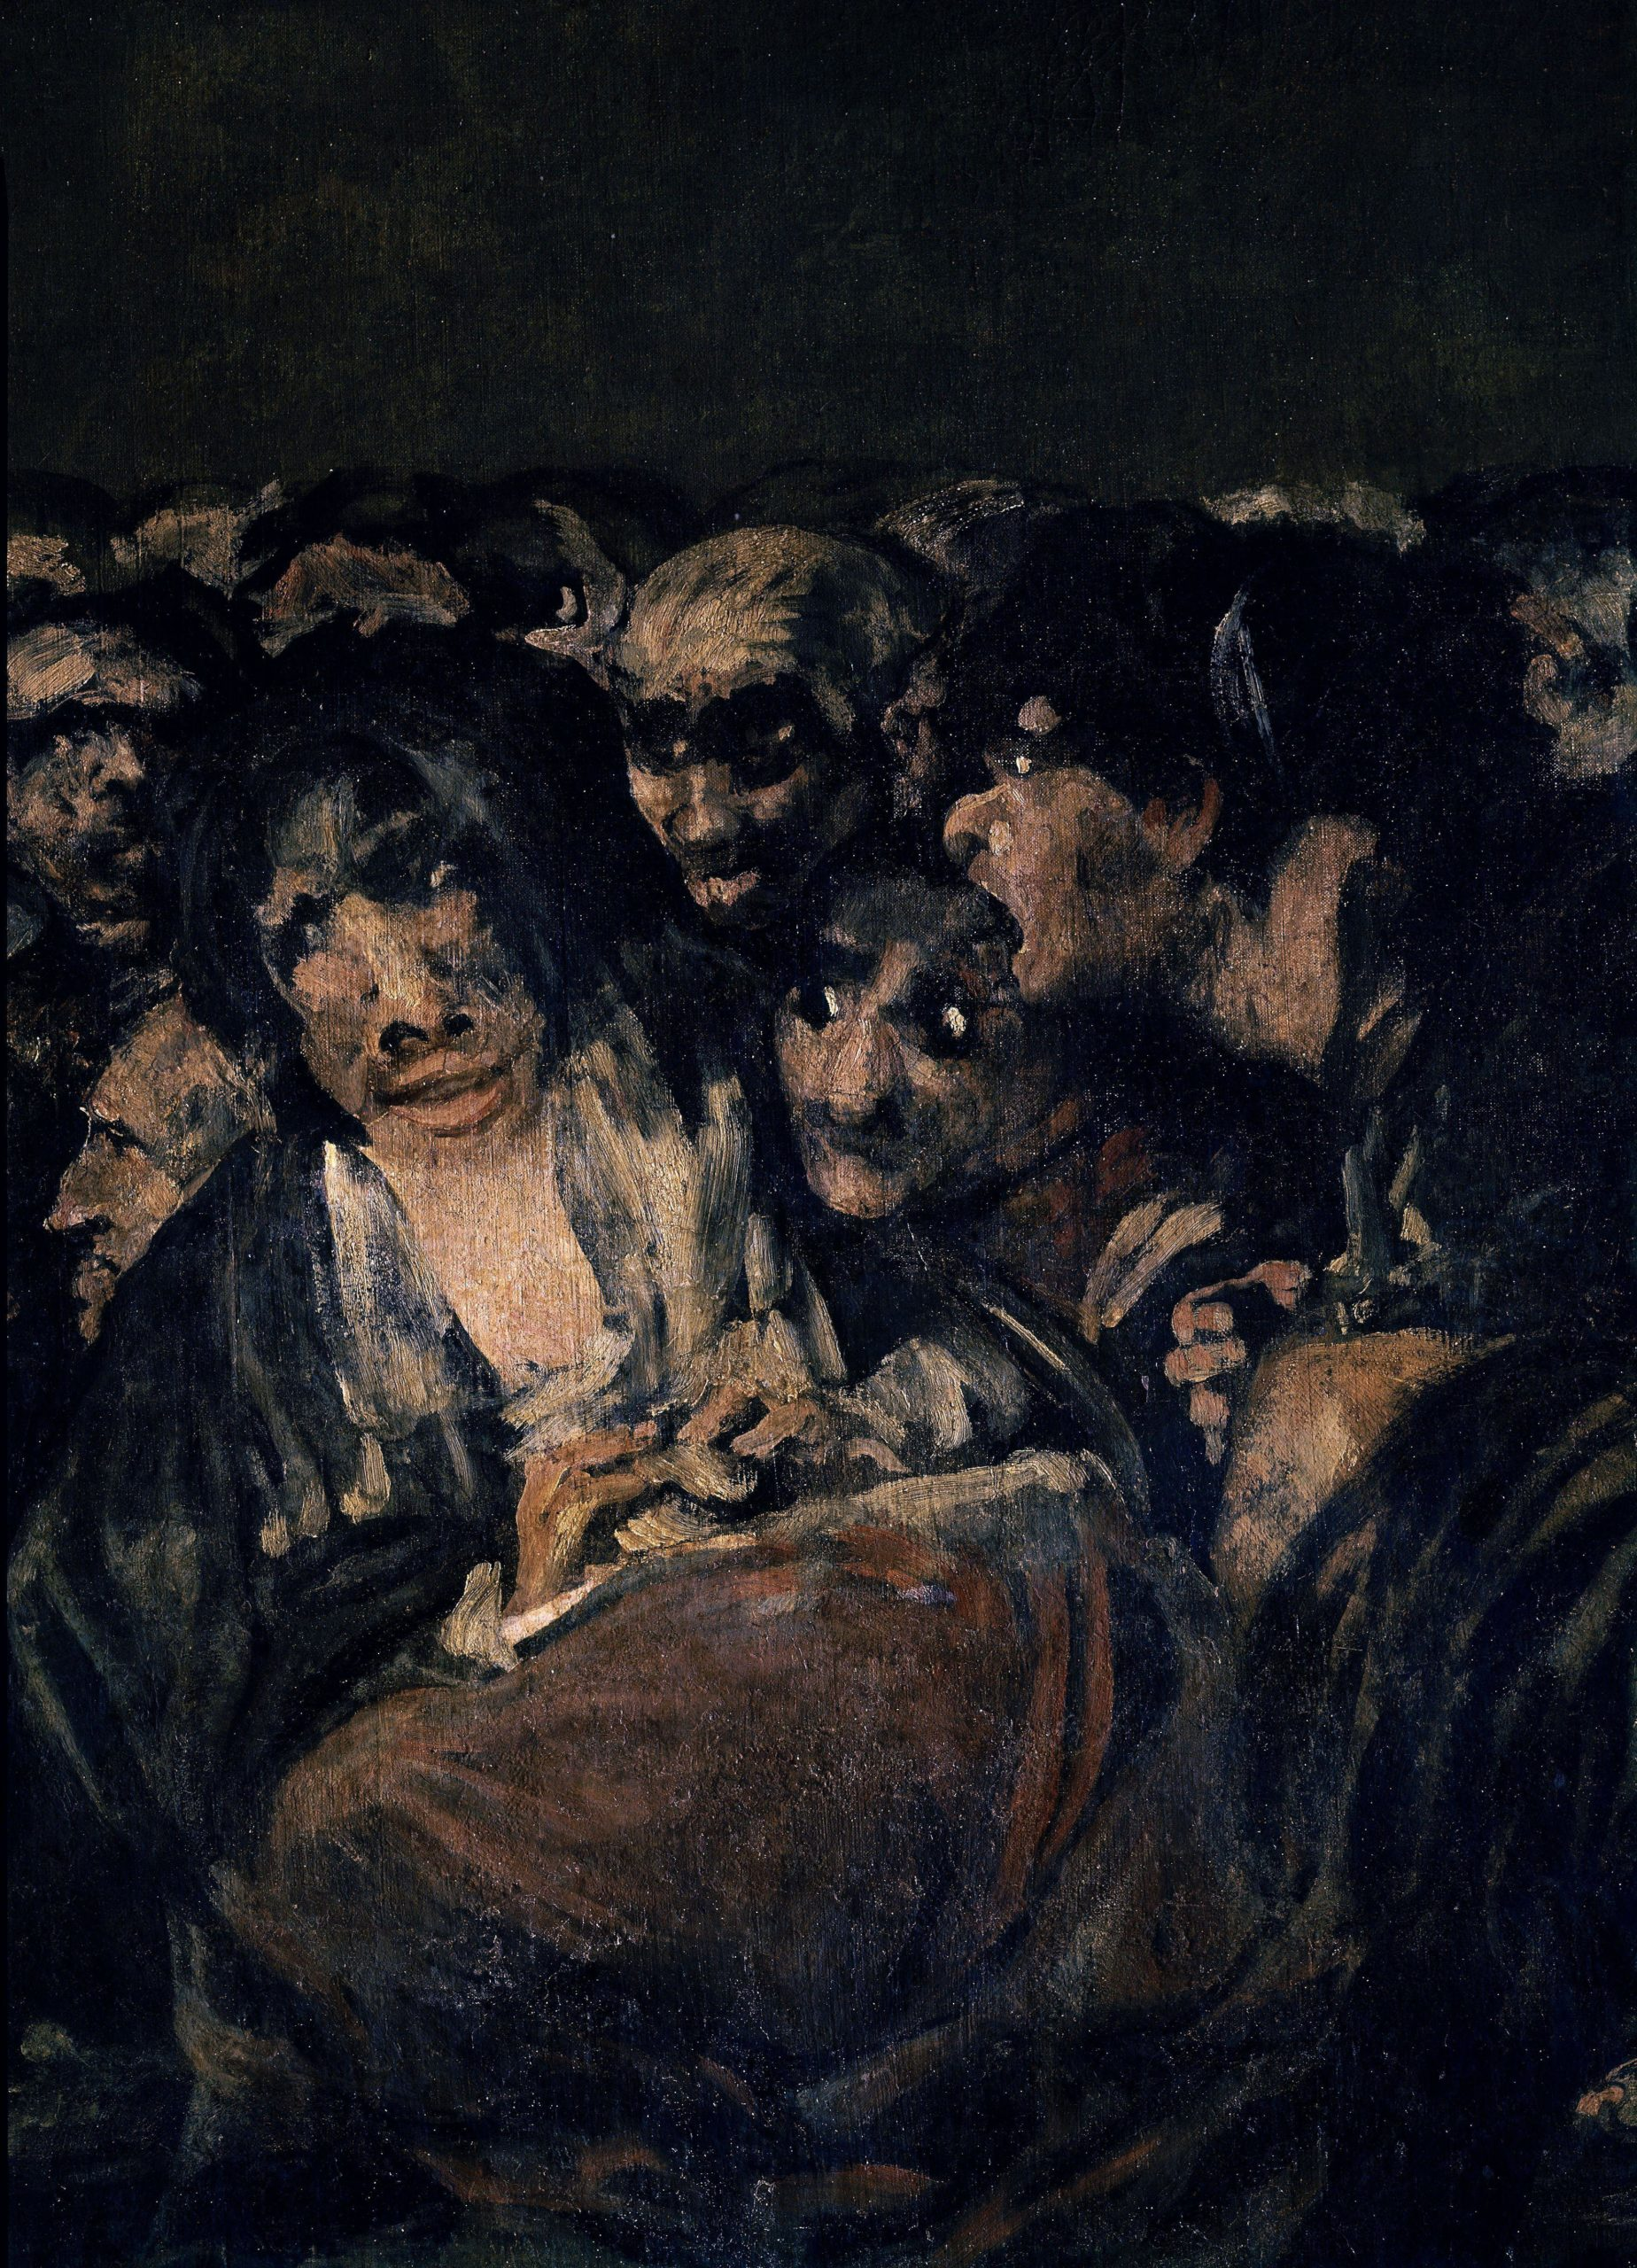 An oil painting depicting a crowd of human faces.